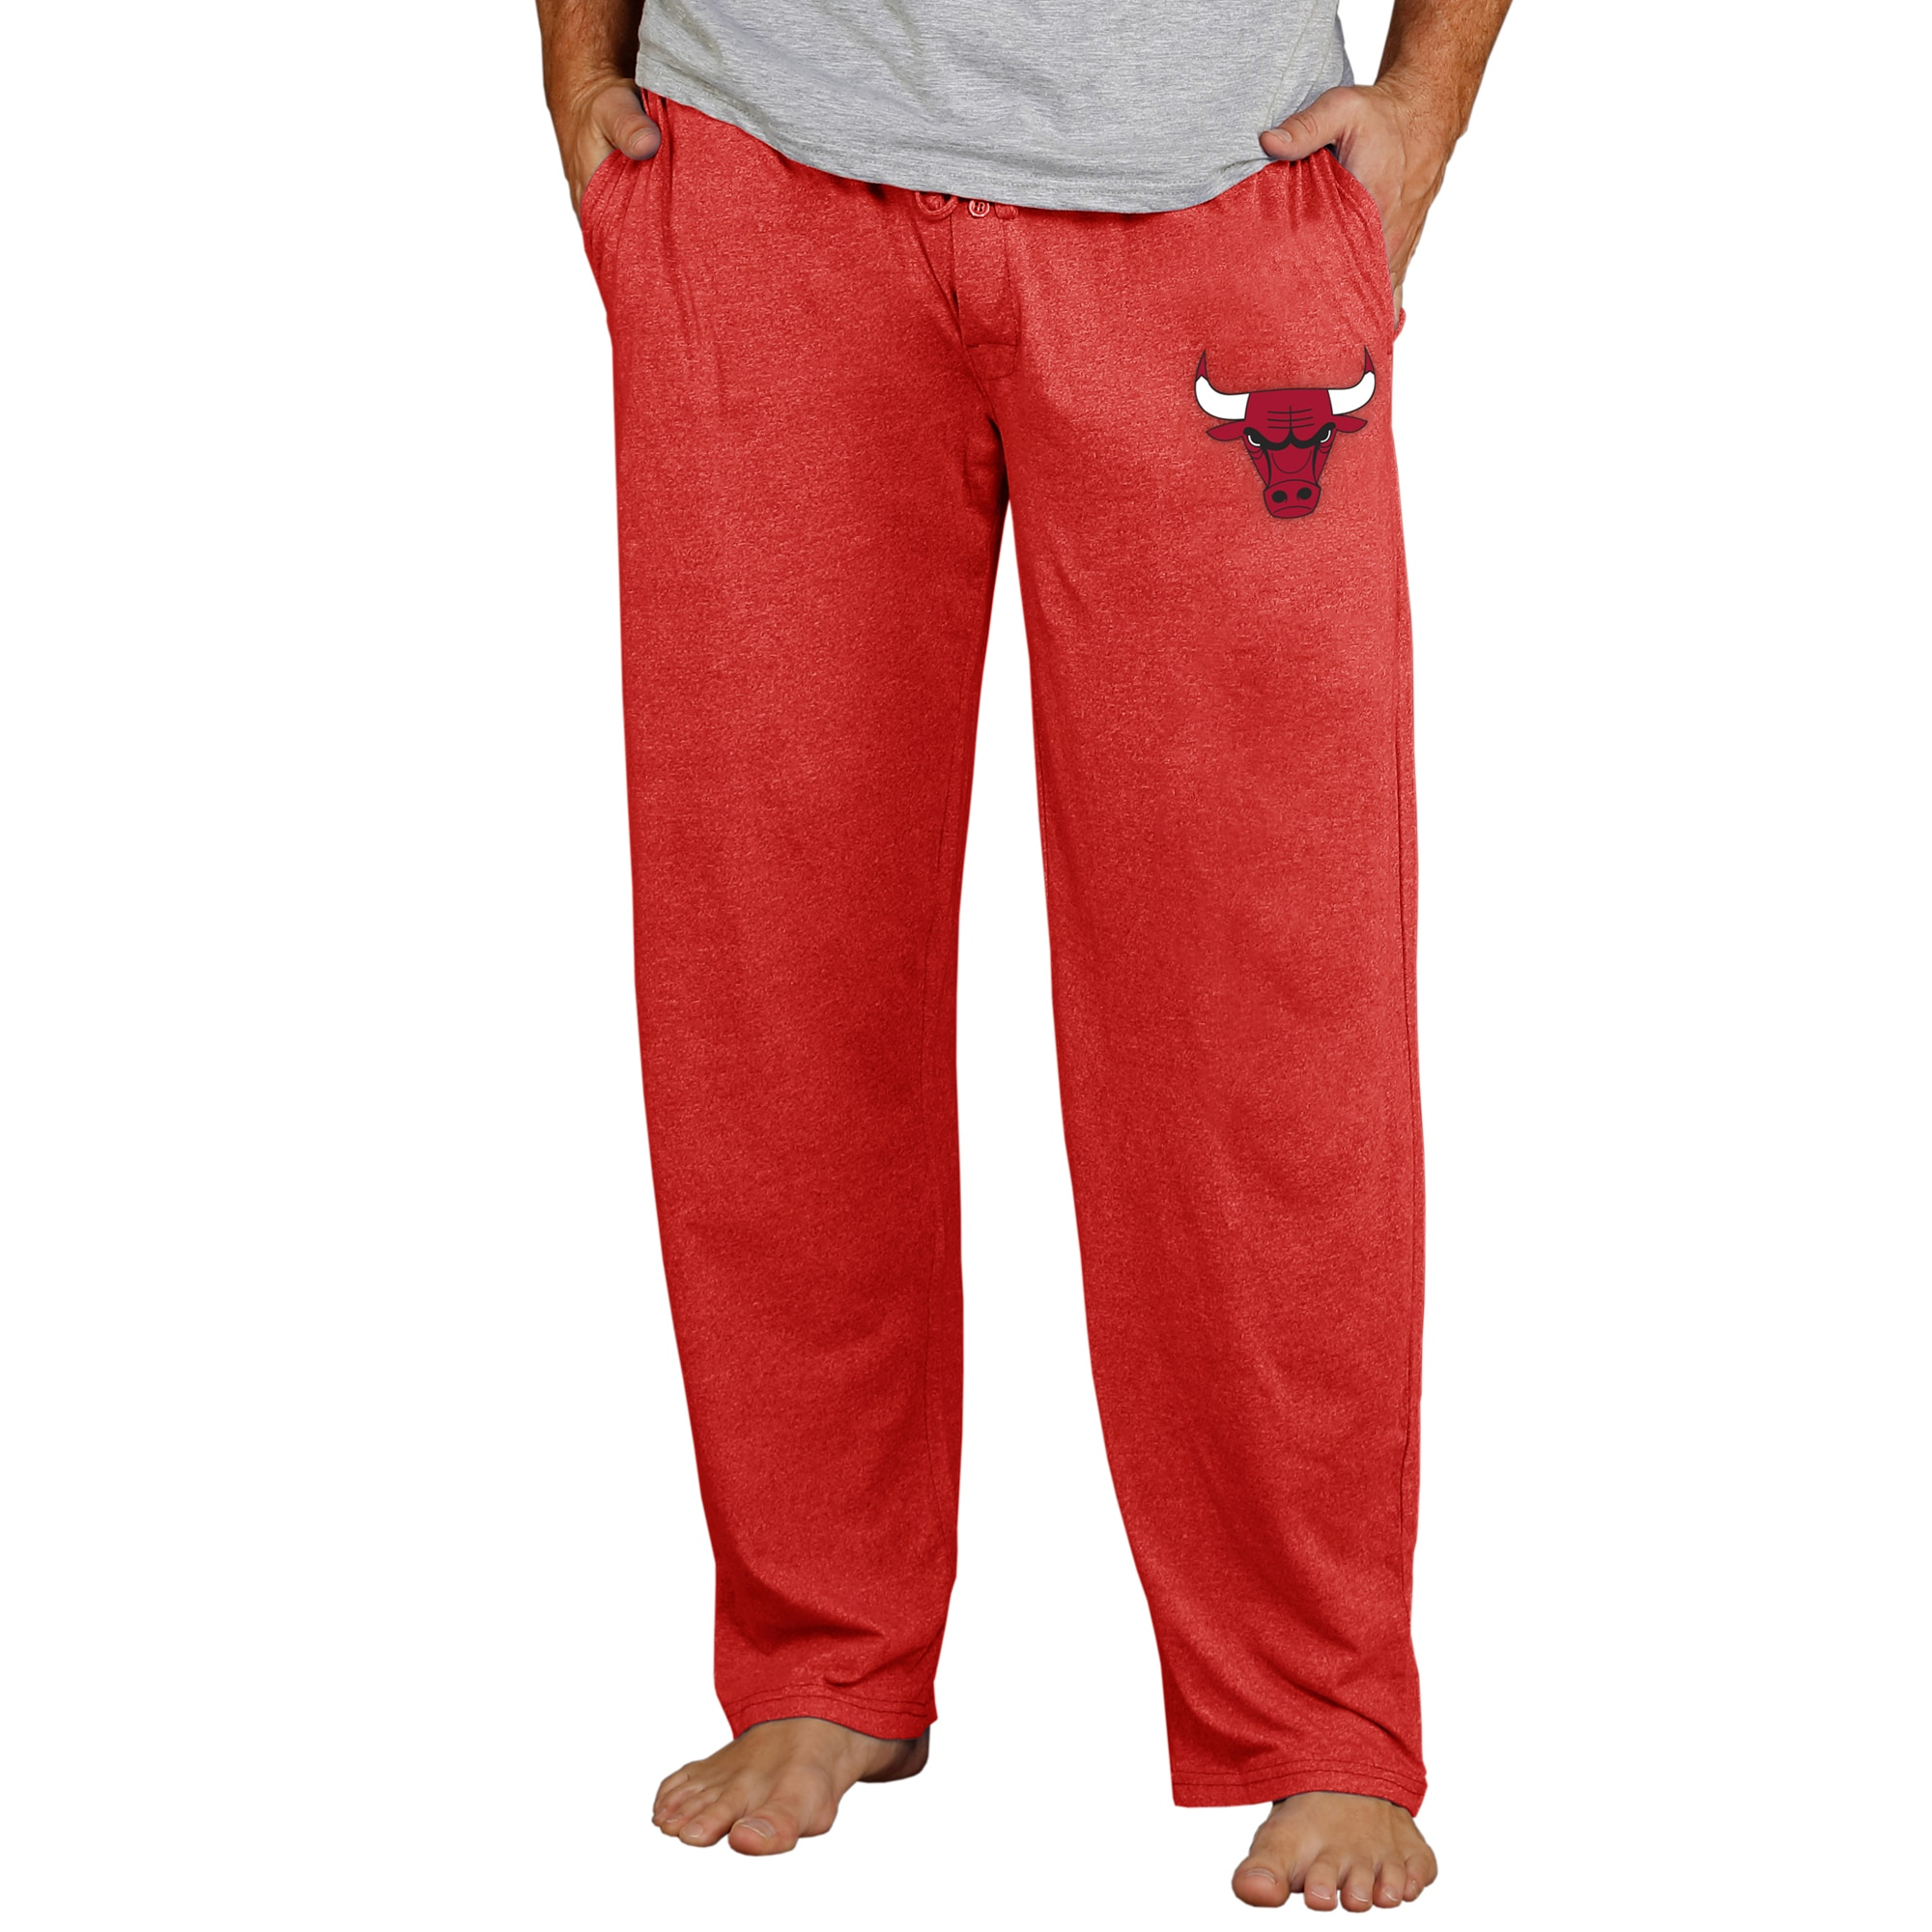 Chicago Bulls Concepts Sport Quest Knit Pants - Red